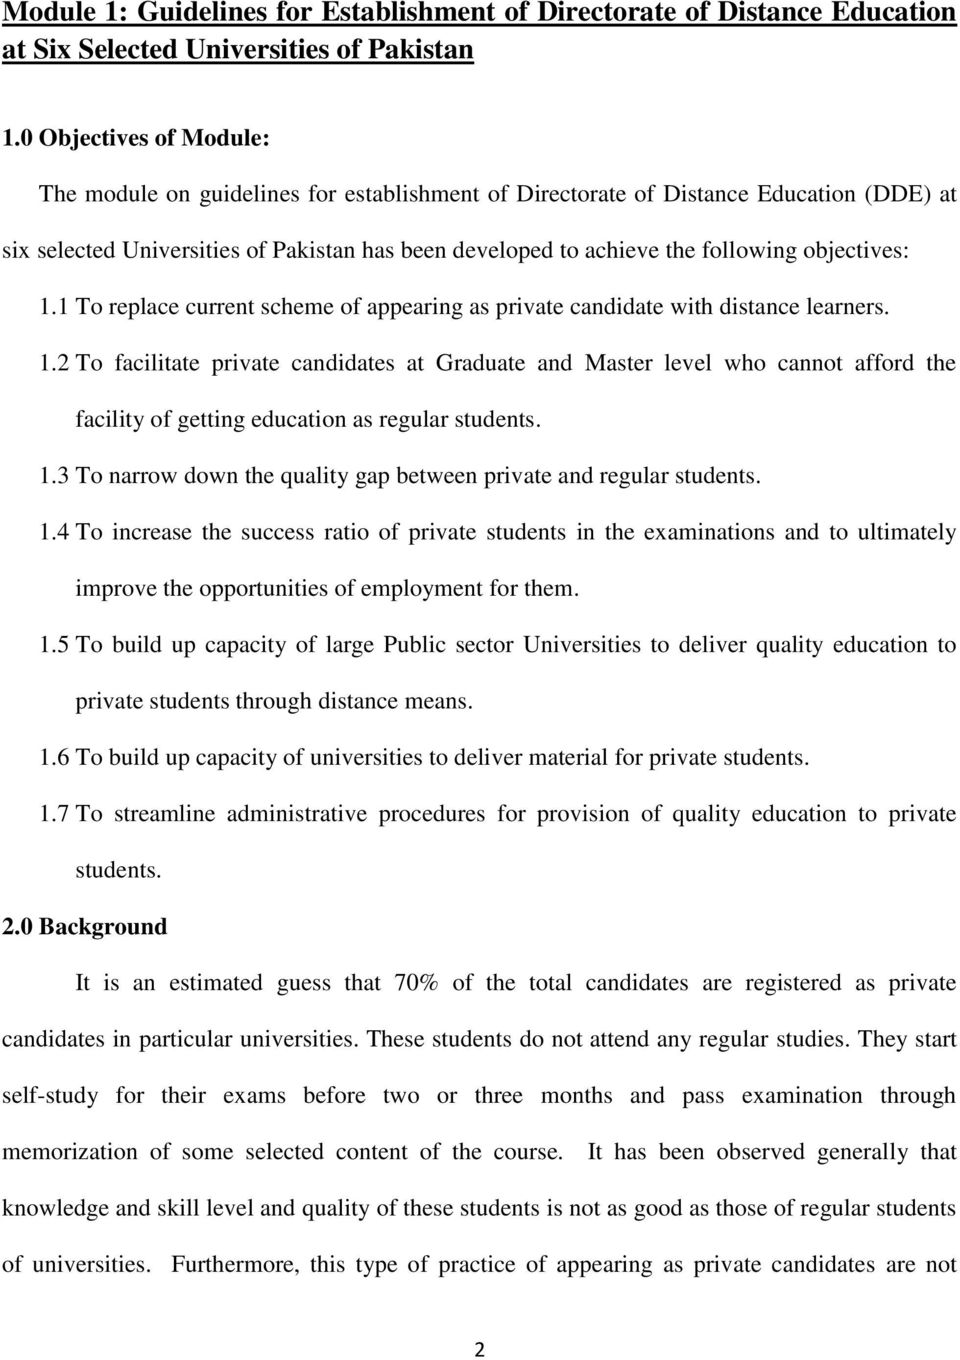 objectives: 1.1 To replace current scheme of appearing as private candidate with distance learners. 1.2 To facilitate private candidates at Graduate and Master level who cannot afford the facility of getting education as regular students.